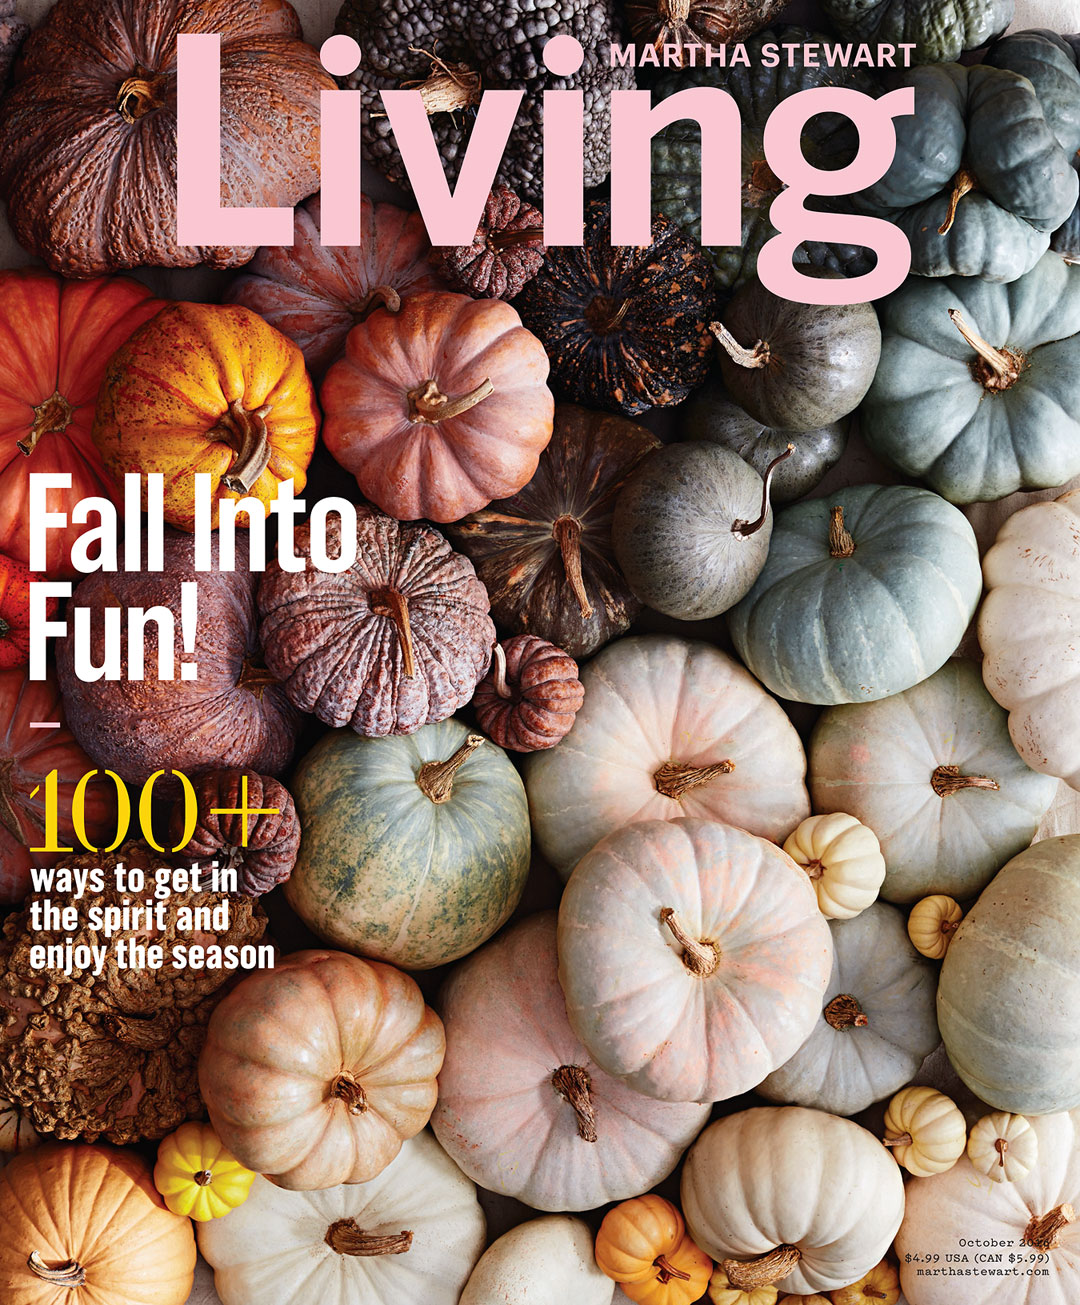 000-MarthaStewartLiving-Oct2016-2